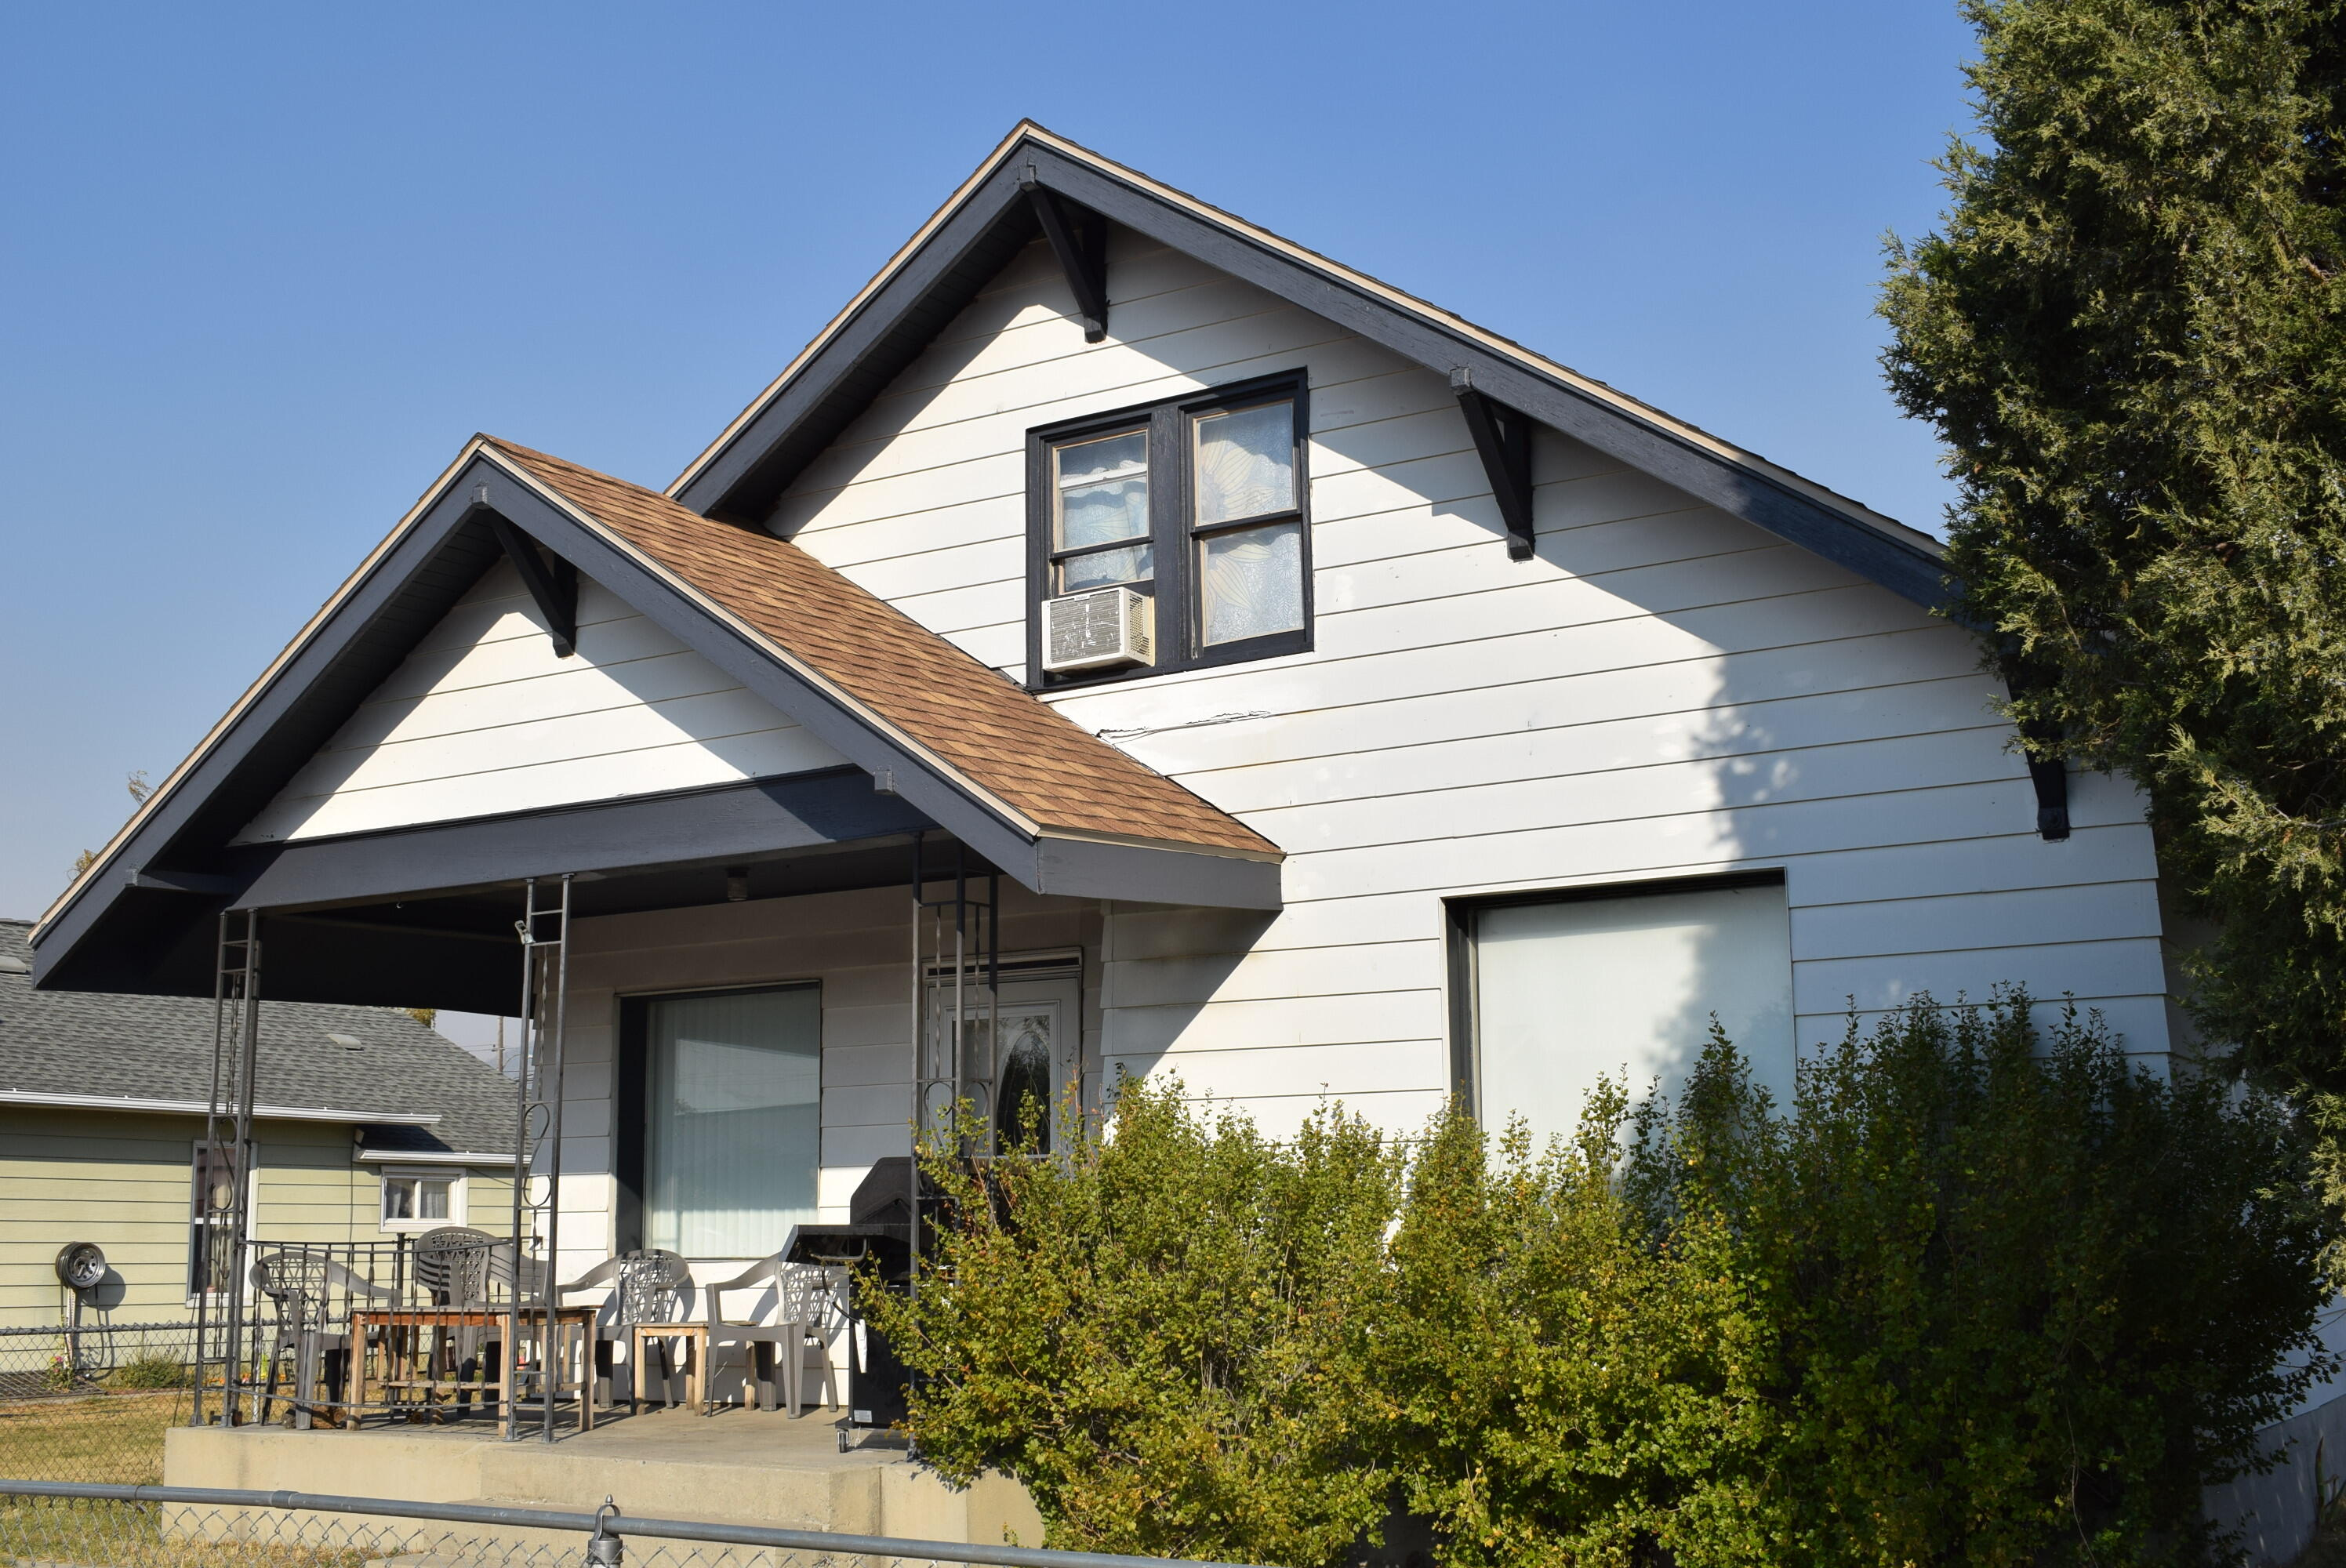 PRICE REDUCED !!!   Nice family home situated in the center of flat area.  1 bedroom main floor 2 bedrooms upstairs.  Fenced yard and nice double garage with easy alley access.  Basement has laundry, storage and a place to hang out.  Newer roof on house and brand new roof on garage, with fresh exterior paint .  House has metal siding and newly painted trim.  Possible VA, FHA or USDA loans.  Call Mick Smith at 406-490-1534 or your real estate professional.